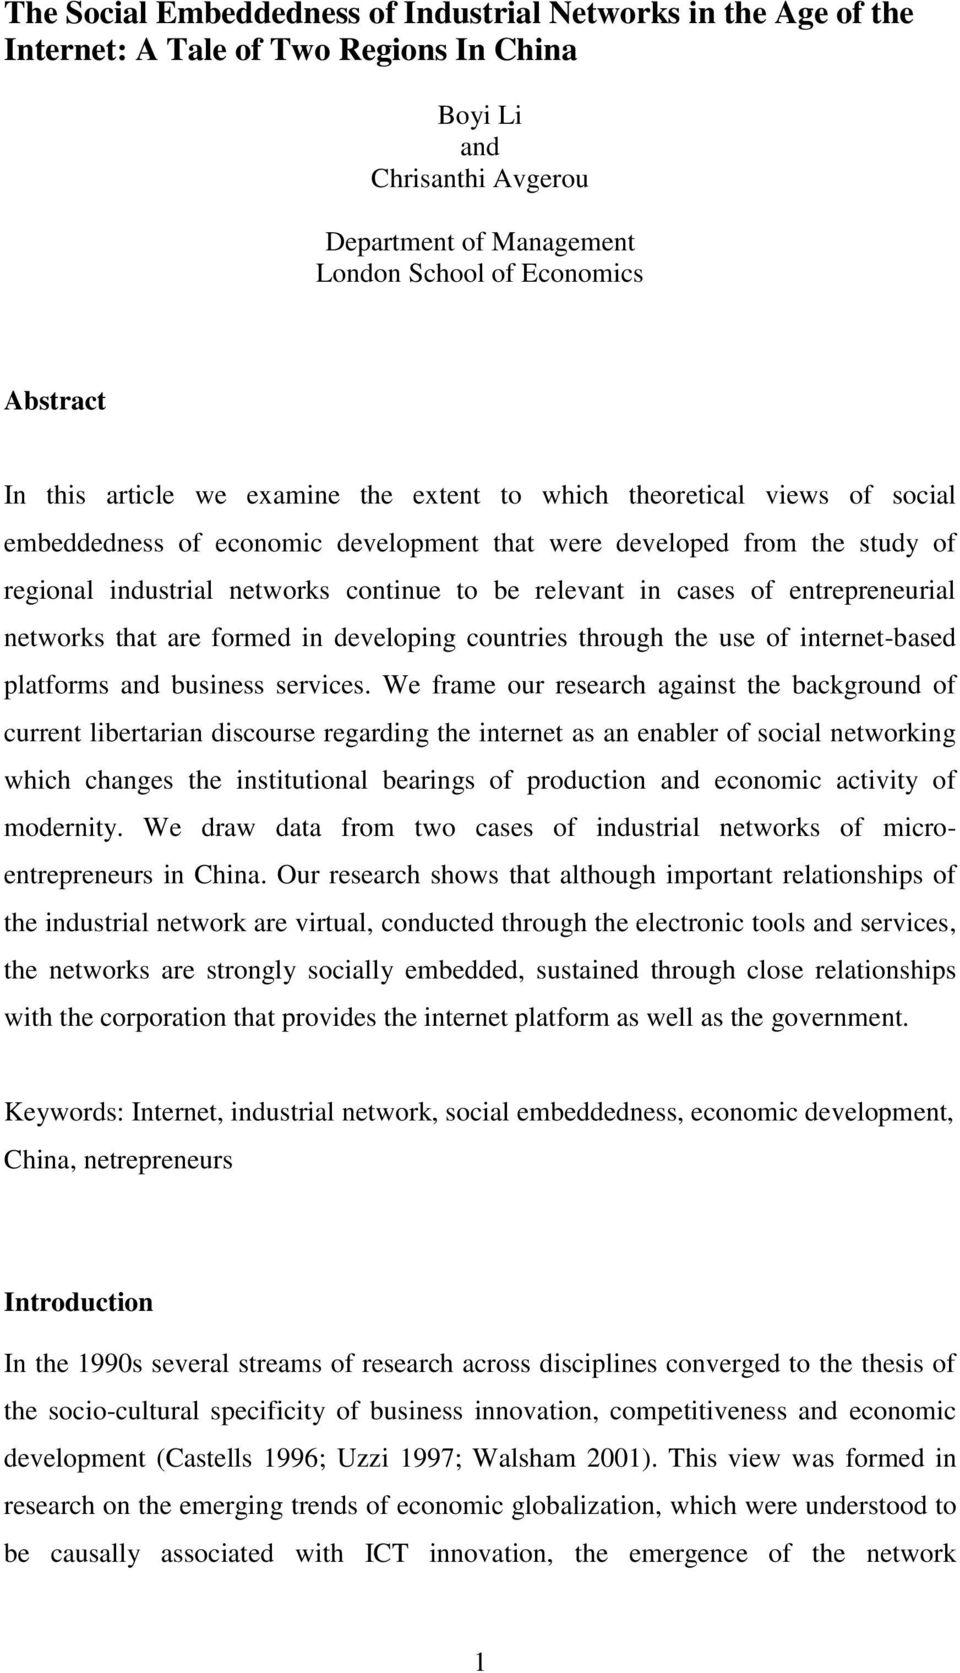 relevant in cases of entrepreneurial networks that are formed in developing countries through the use of internet-based platforms and business services.